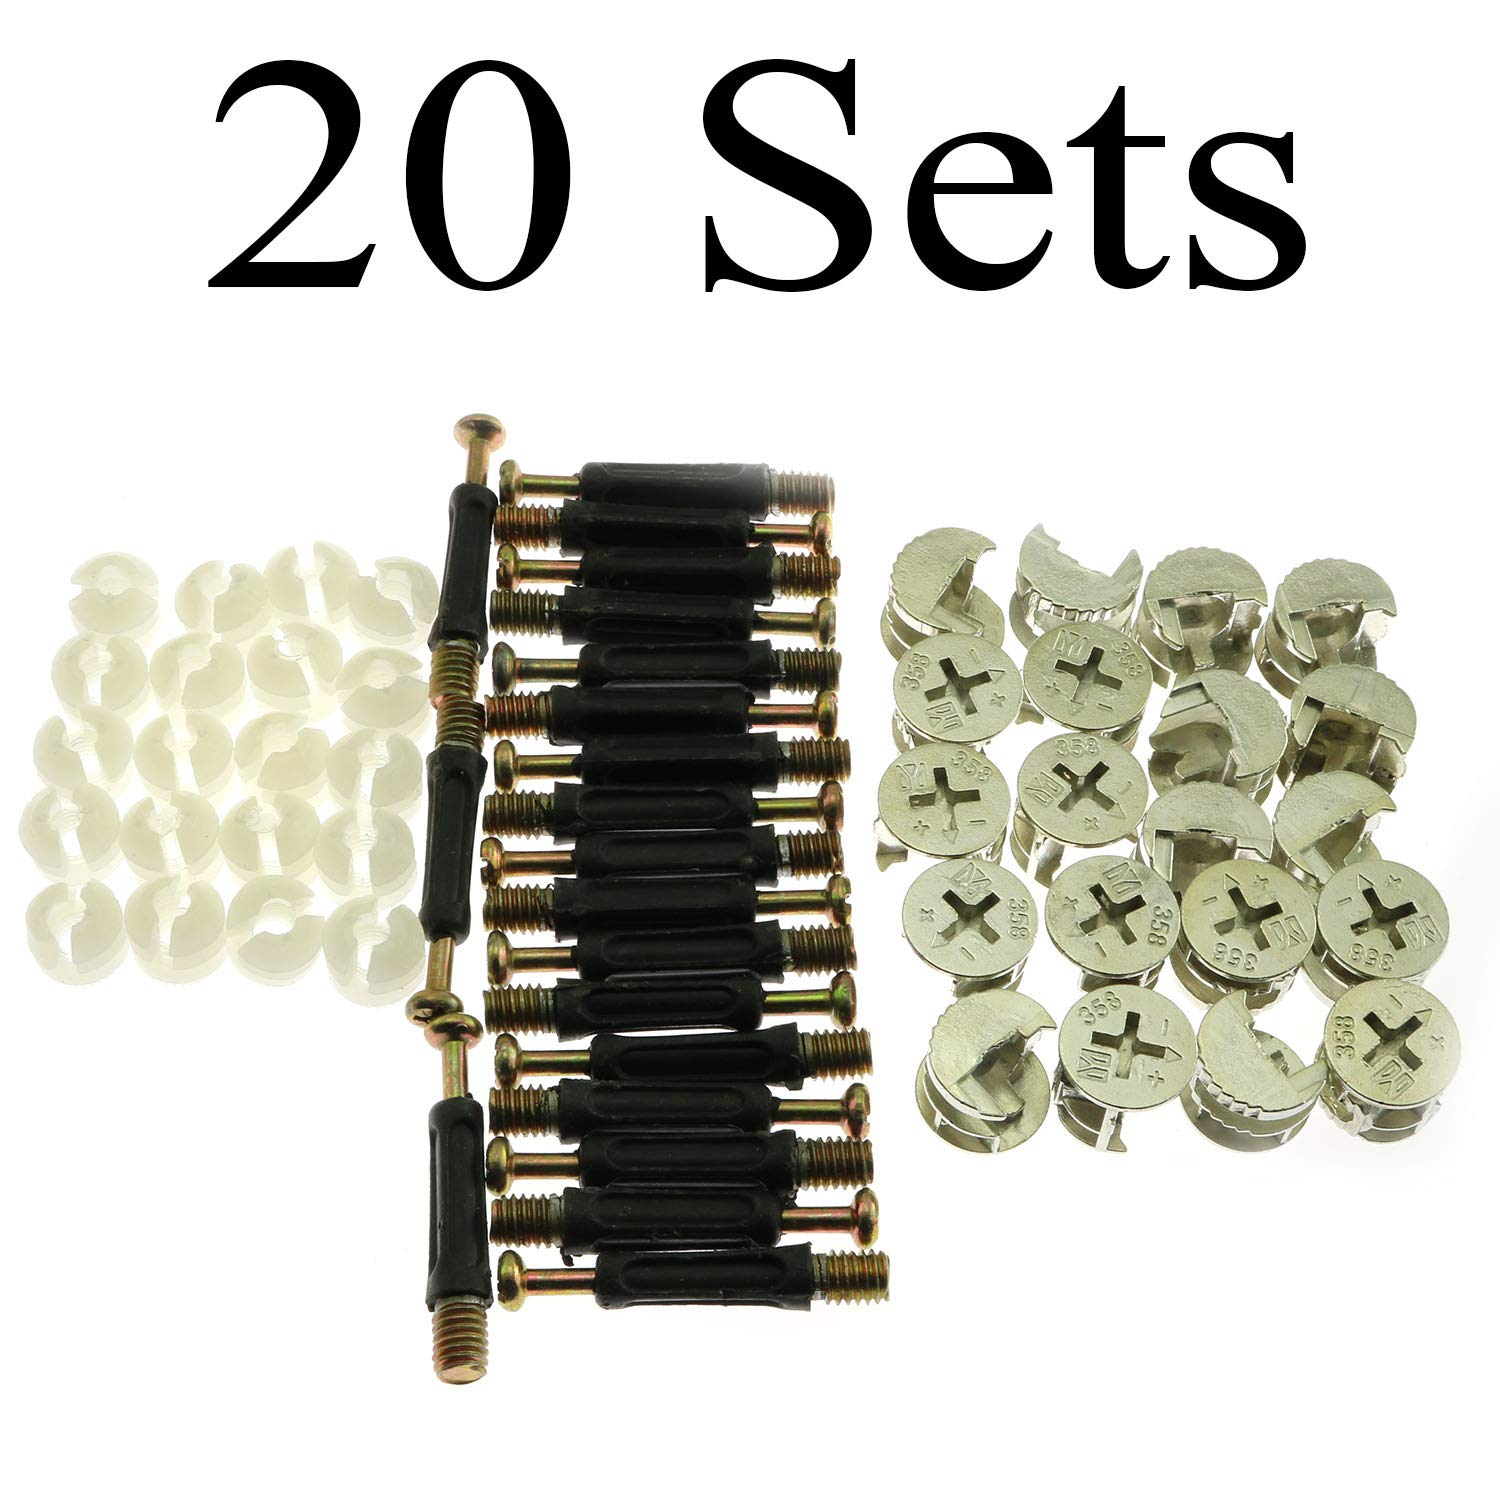 20Sets Furniture Connecting Fittings 20pcs 358 Fitting + 20pcs 40mm Fitting Screw + 20pcs Open Colloid